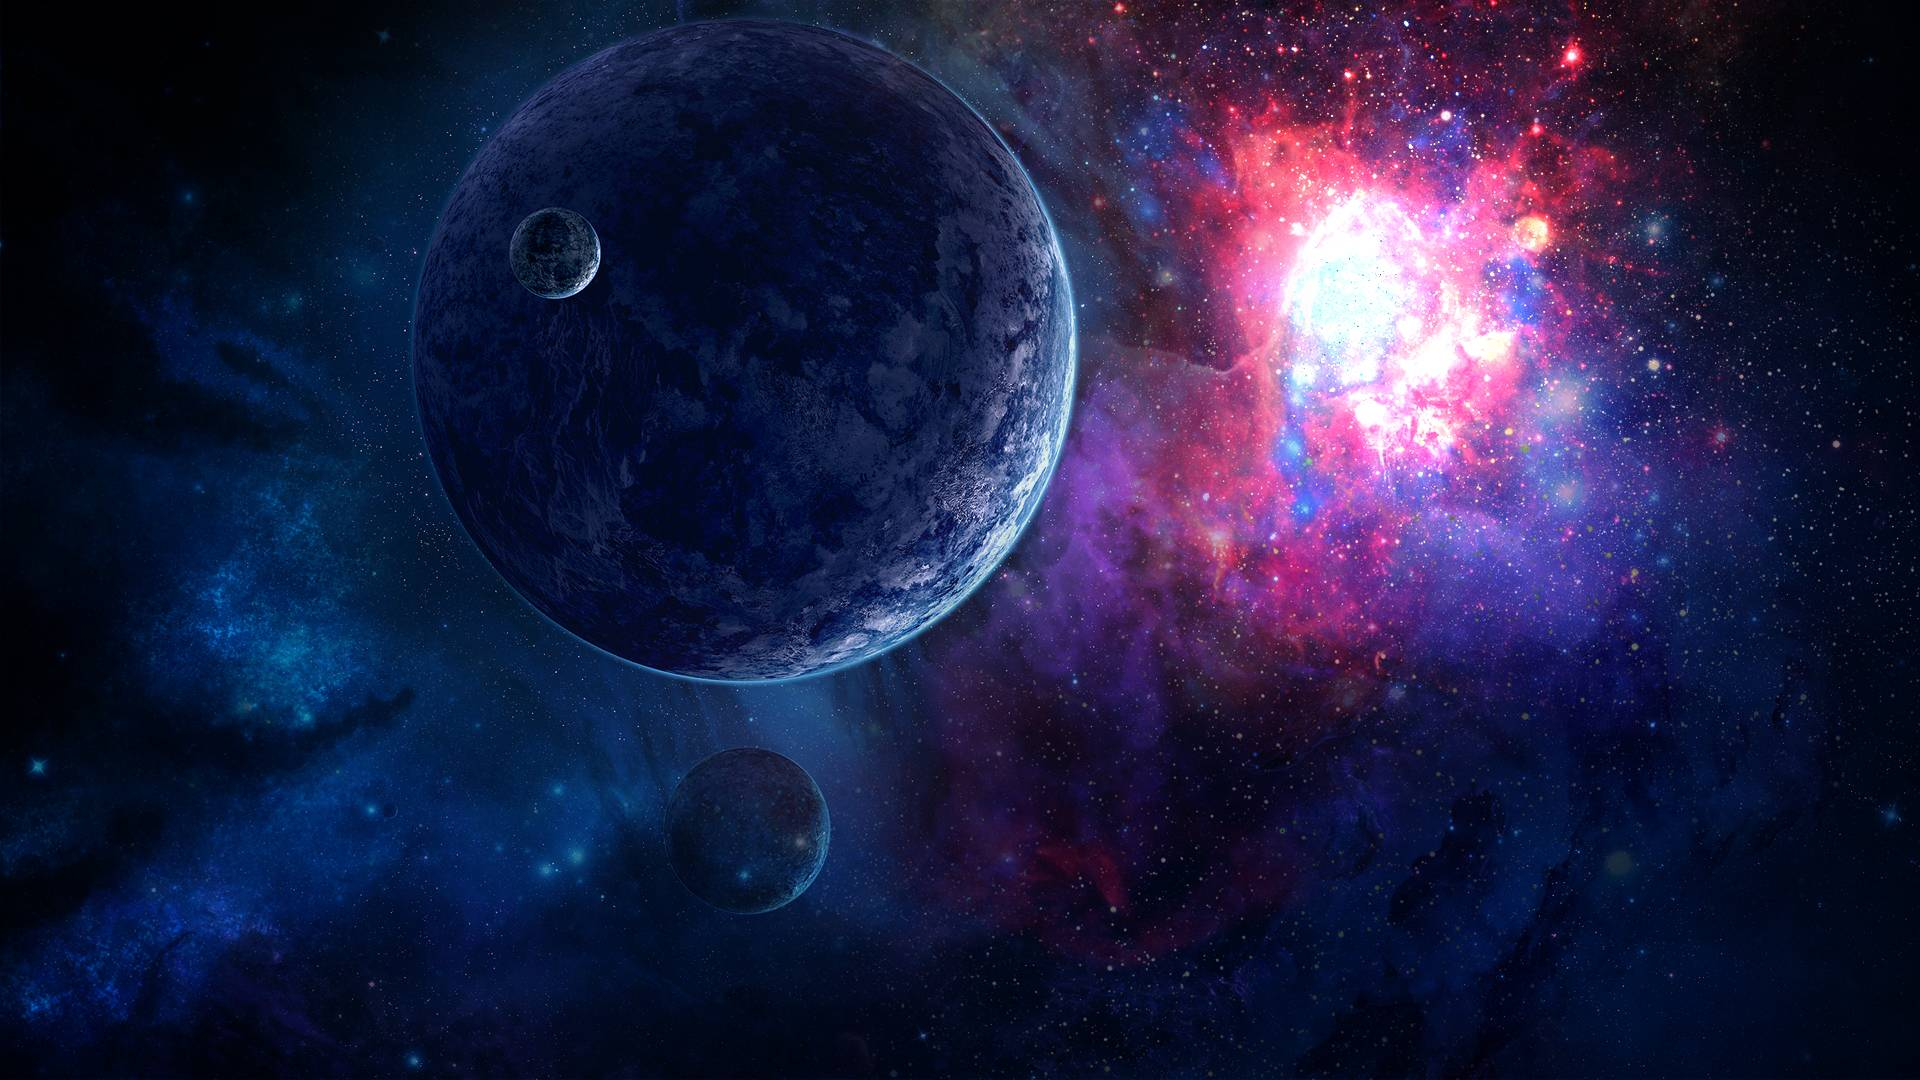 Space Wallpaper 1920x1080 Without Lower Planet By Danielbemelen On